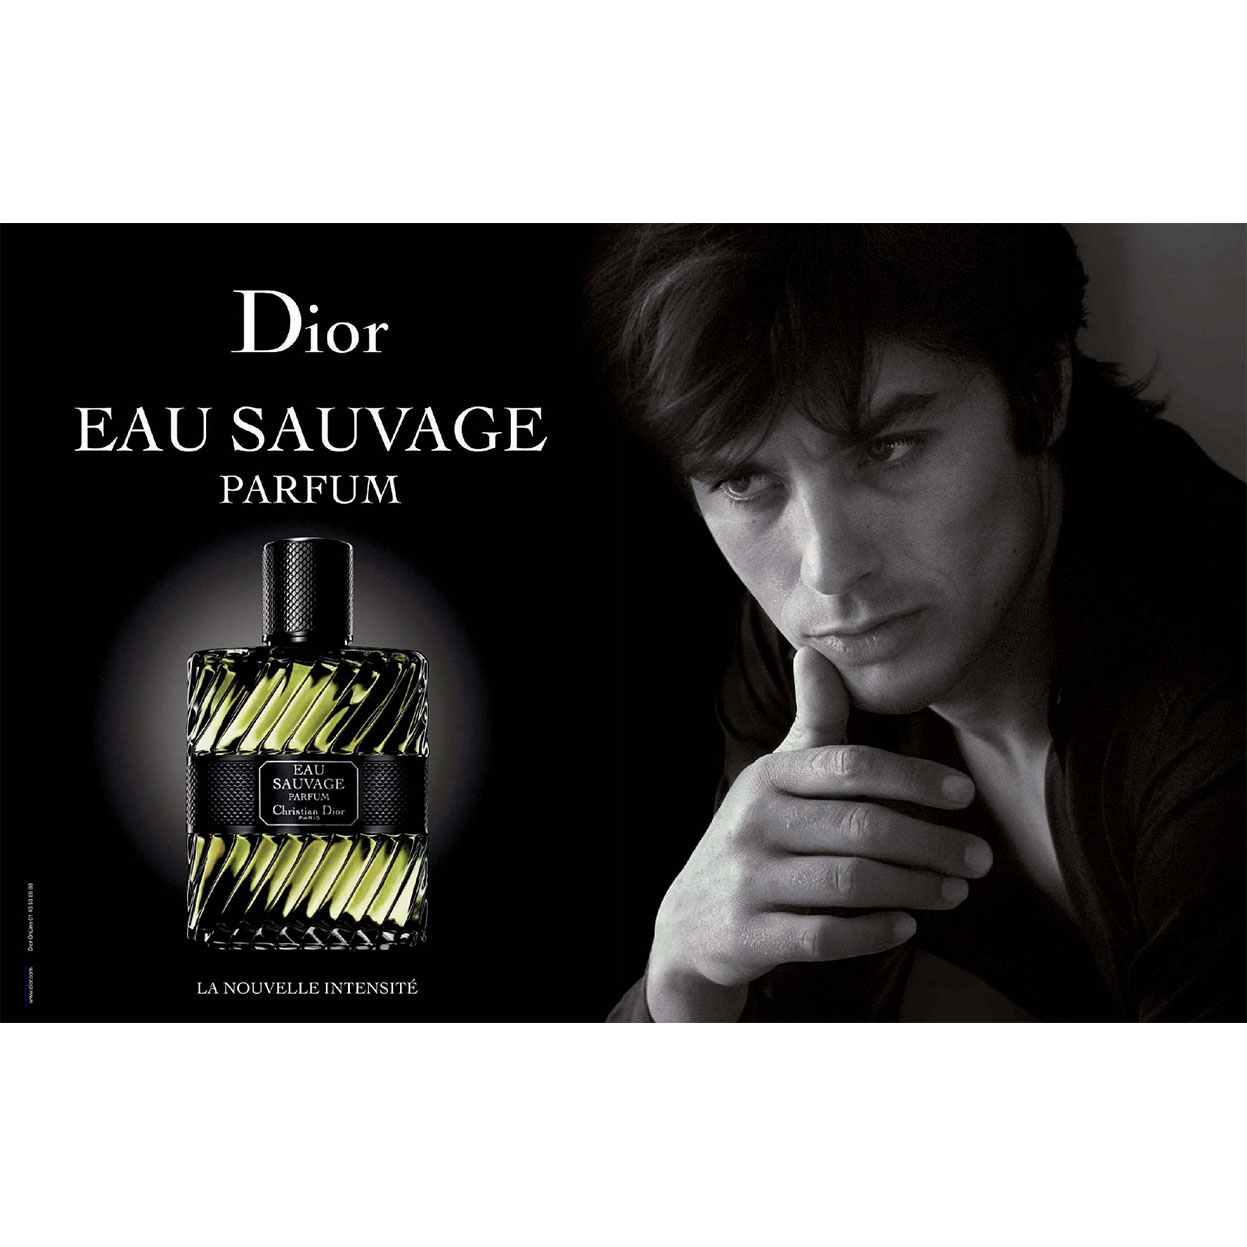 Dior Eau Sauvage for men